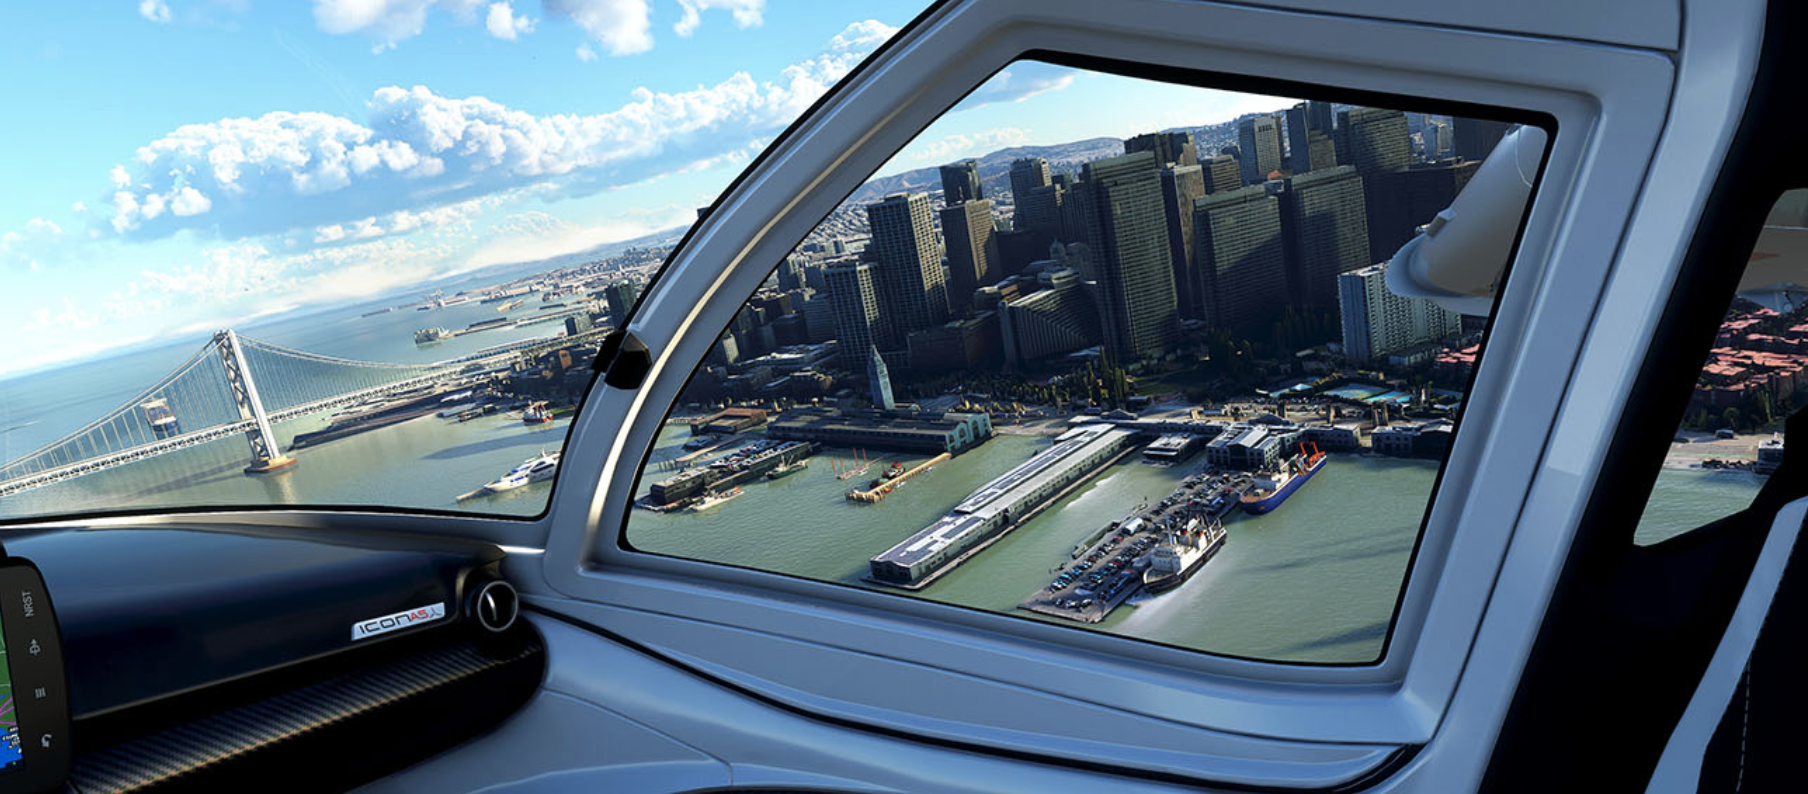 Microsoft teases Azure AI-powered Flight Simulator for PC and Xbox